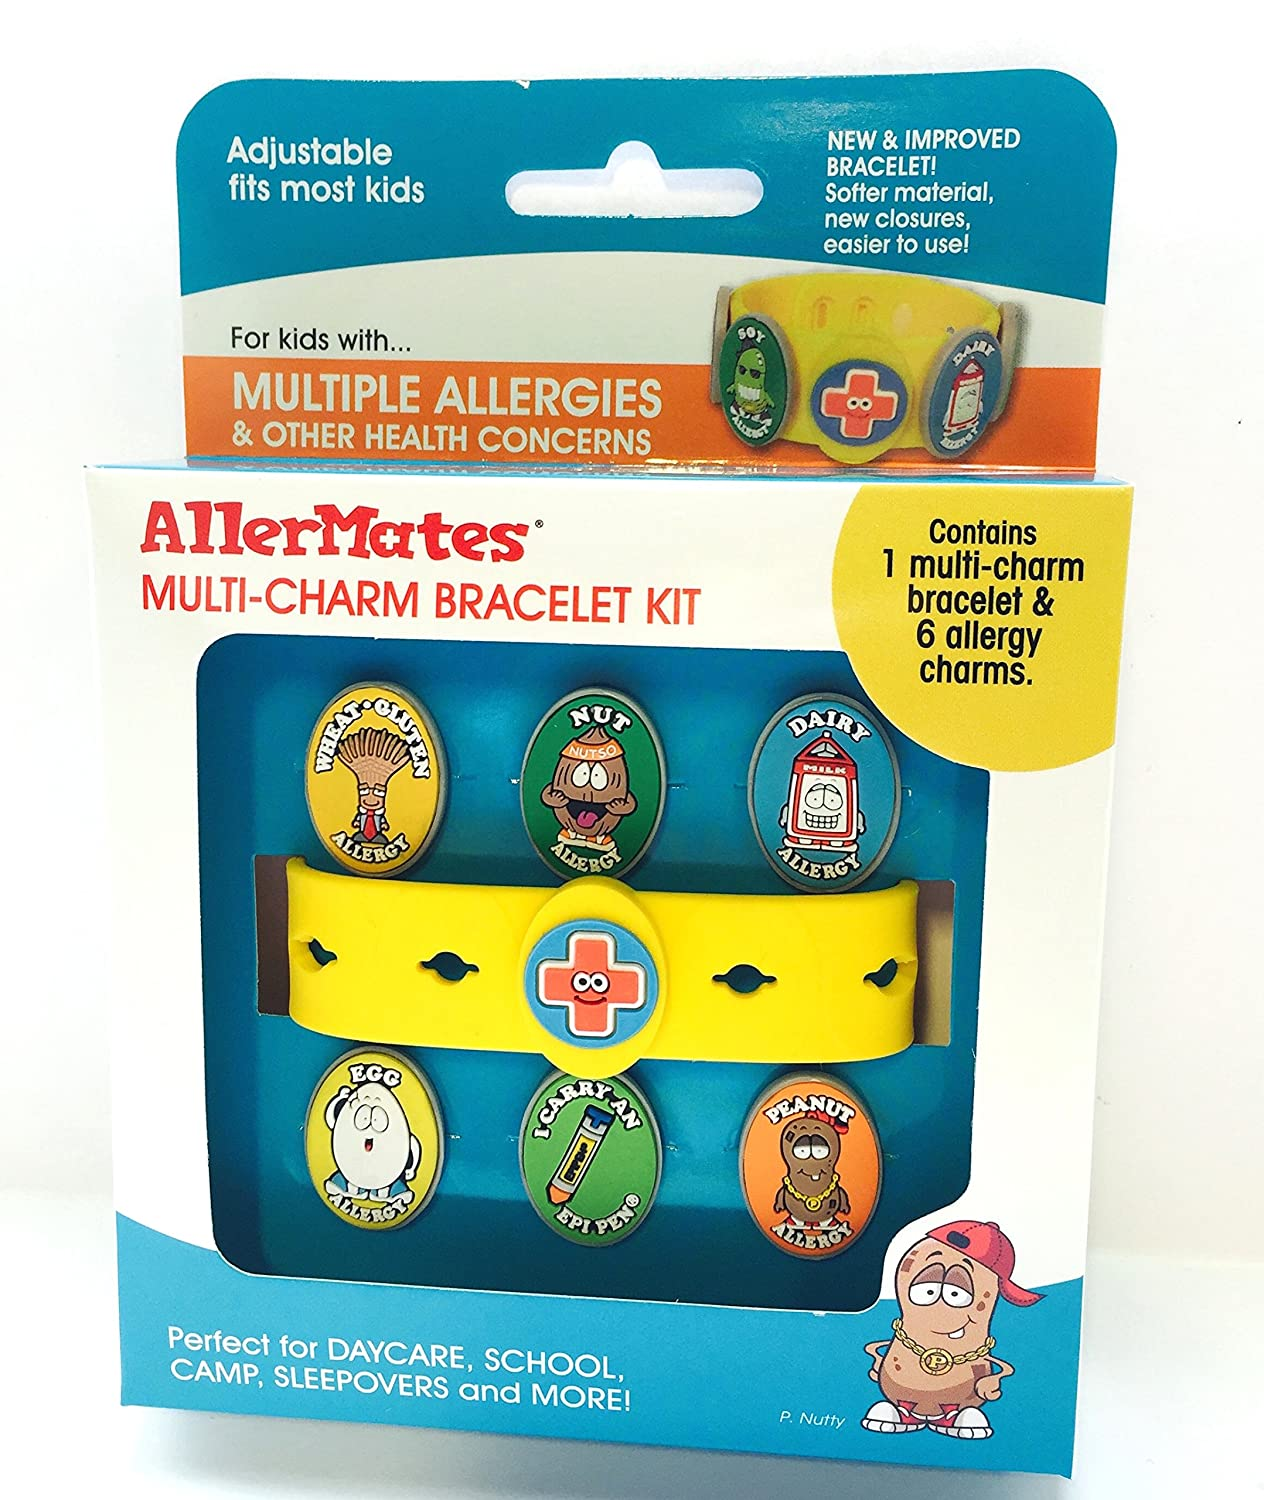 Amazon: New Multicharm Allergy Bracelet + 6 Allergy Charms (now  Includes Epipen Charm): Toys & Games